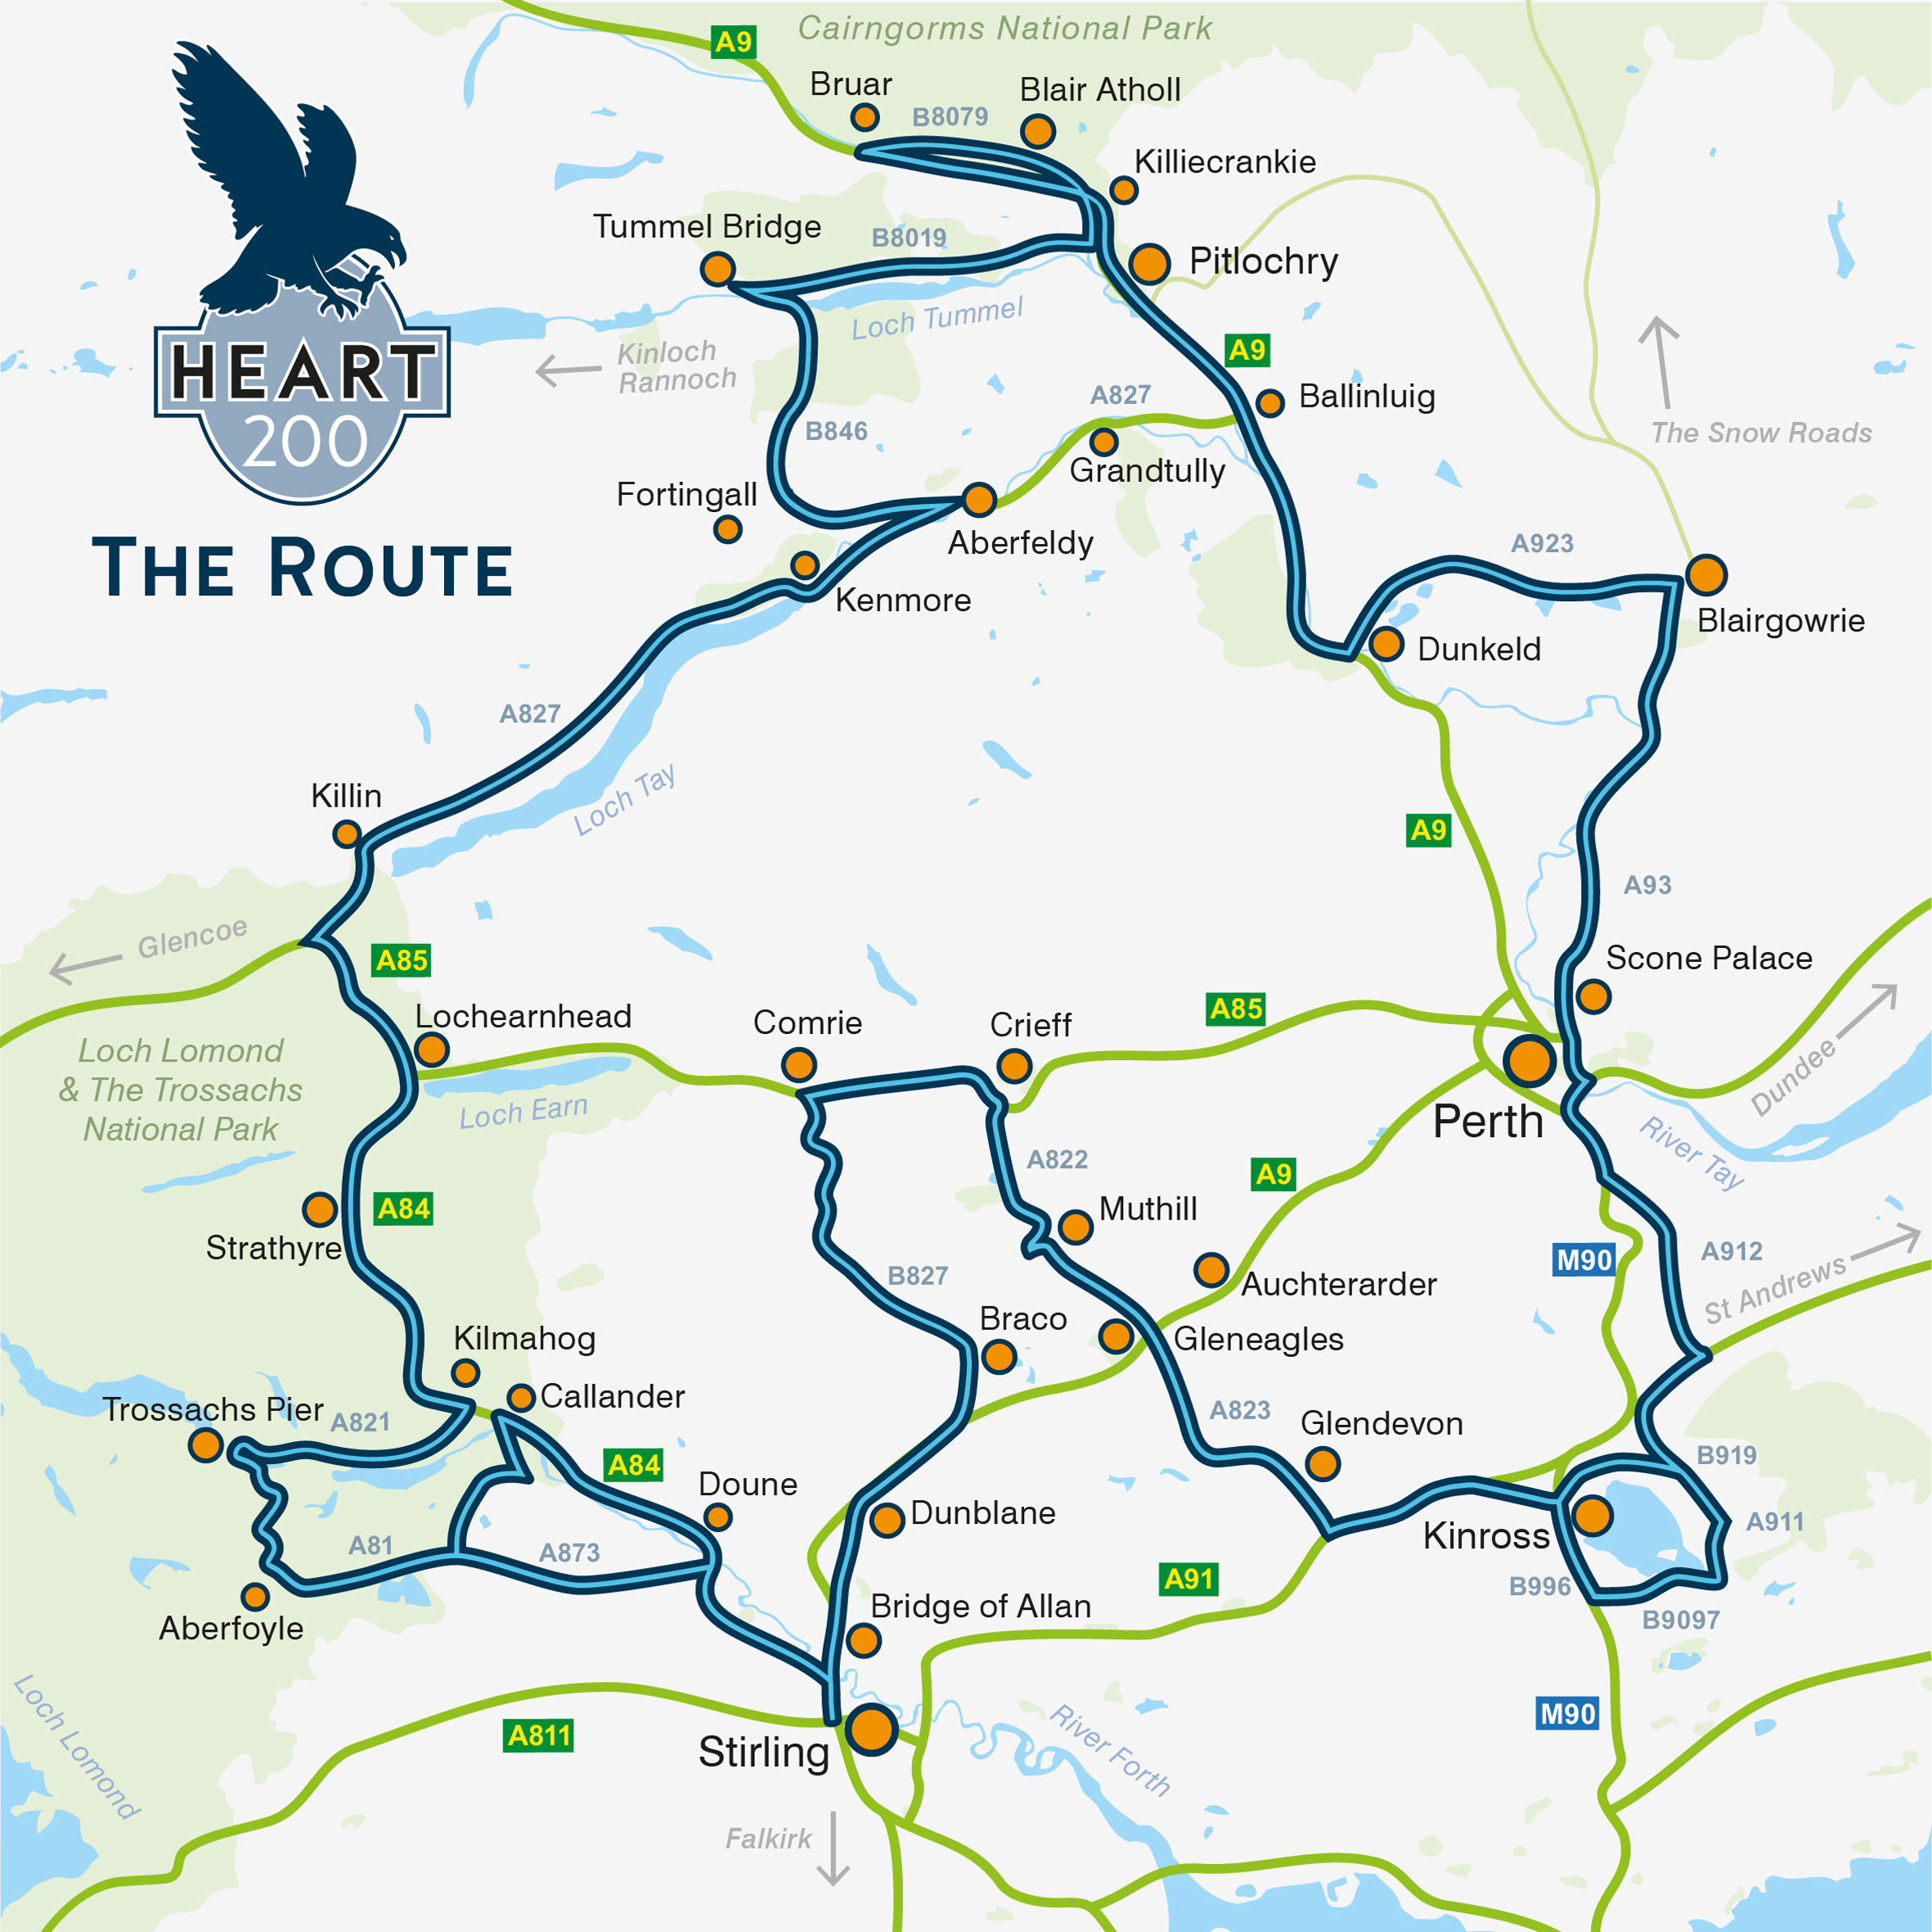 The Heart 200 trail extends around Perthshire.